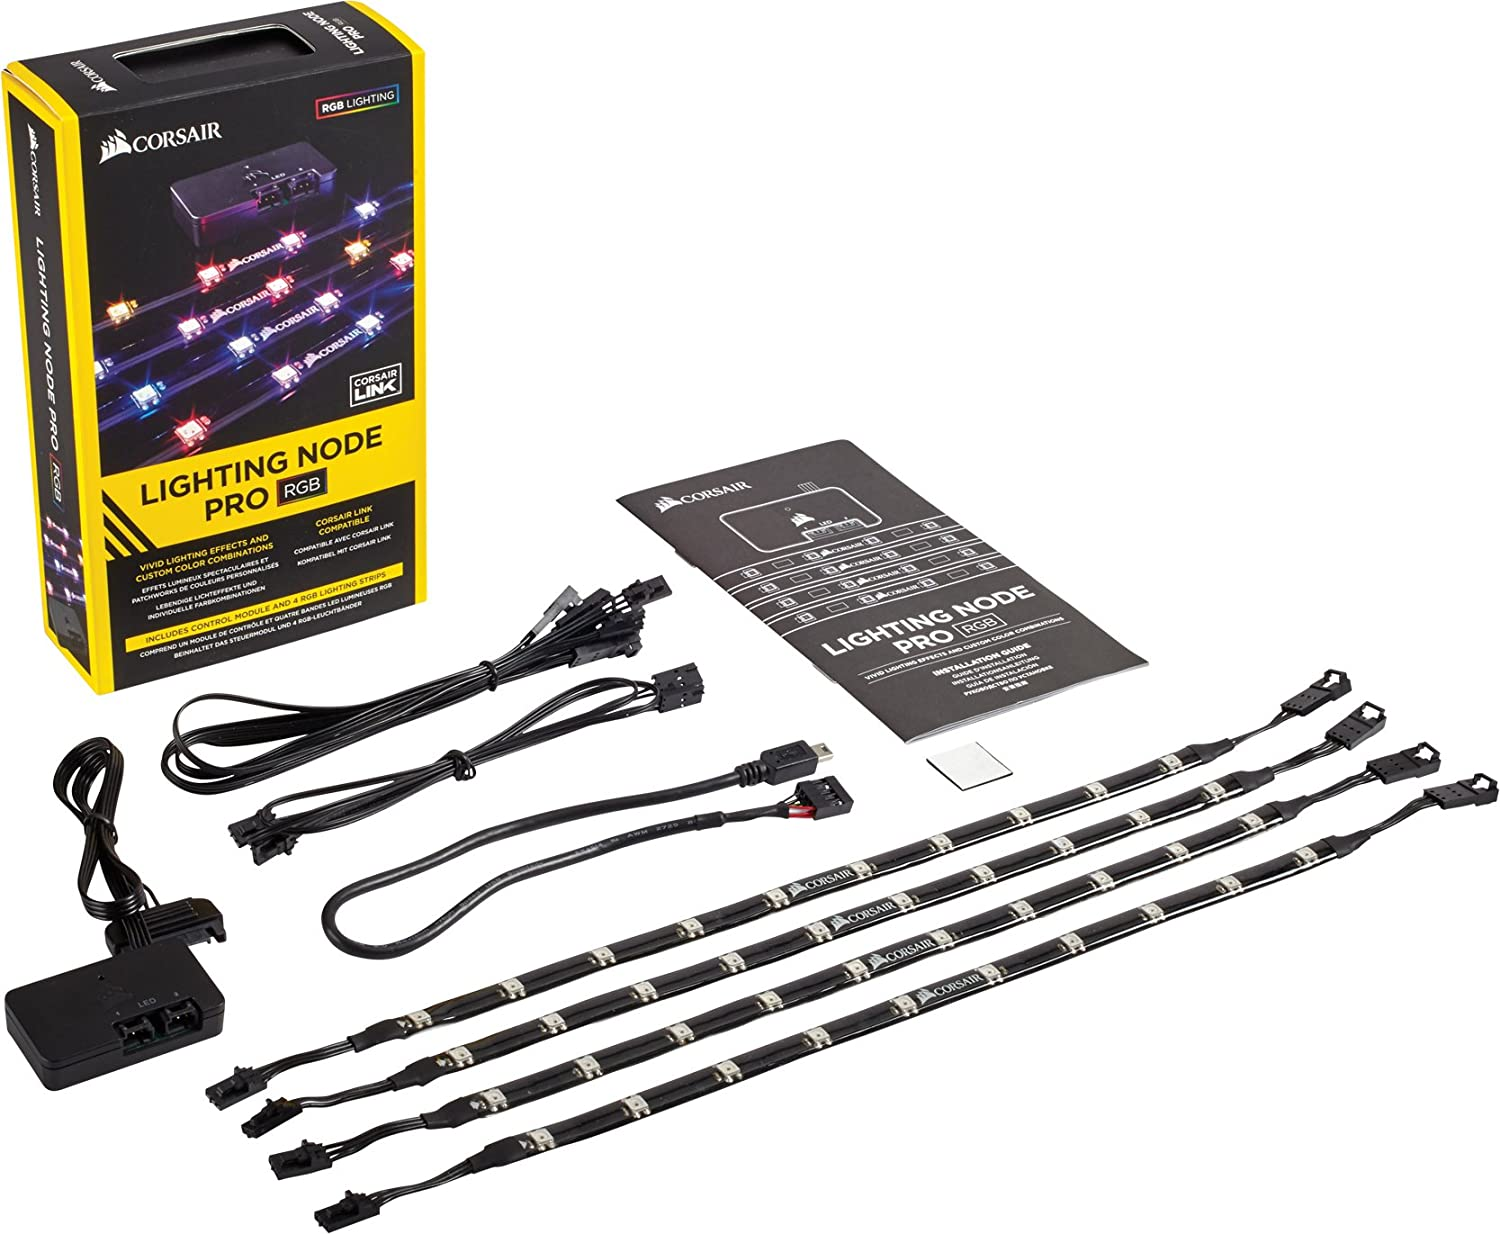 Corsair Icue Lighting Node Pro Controlador Iluminacion Rgb